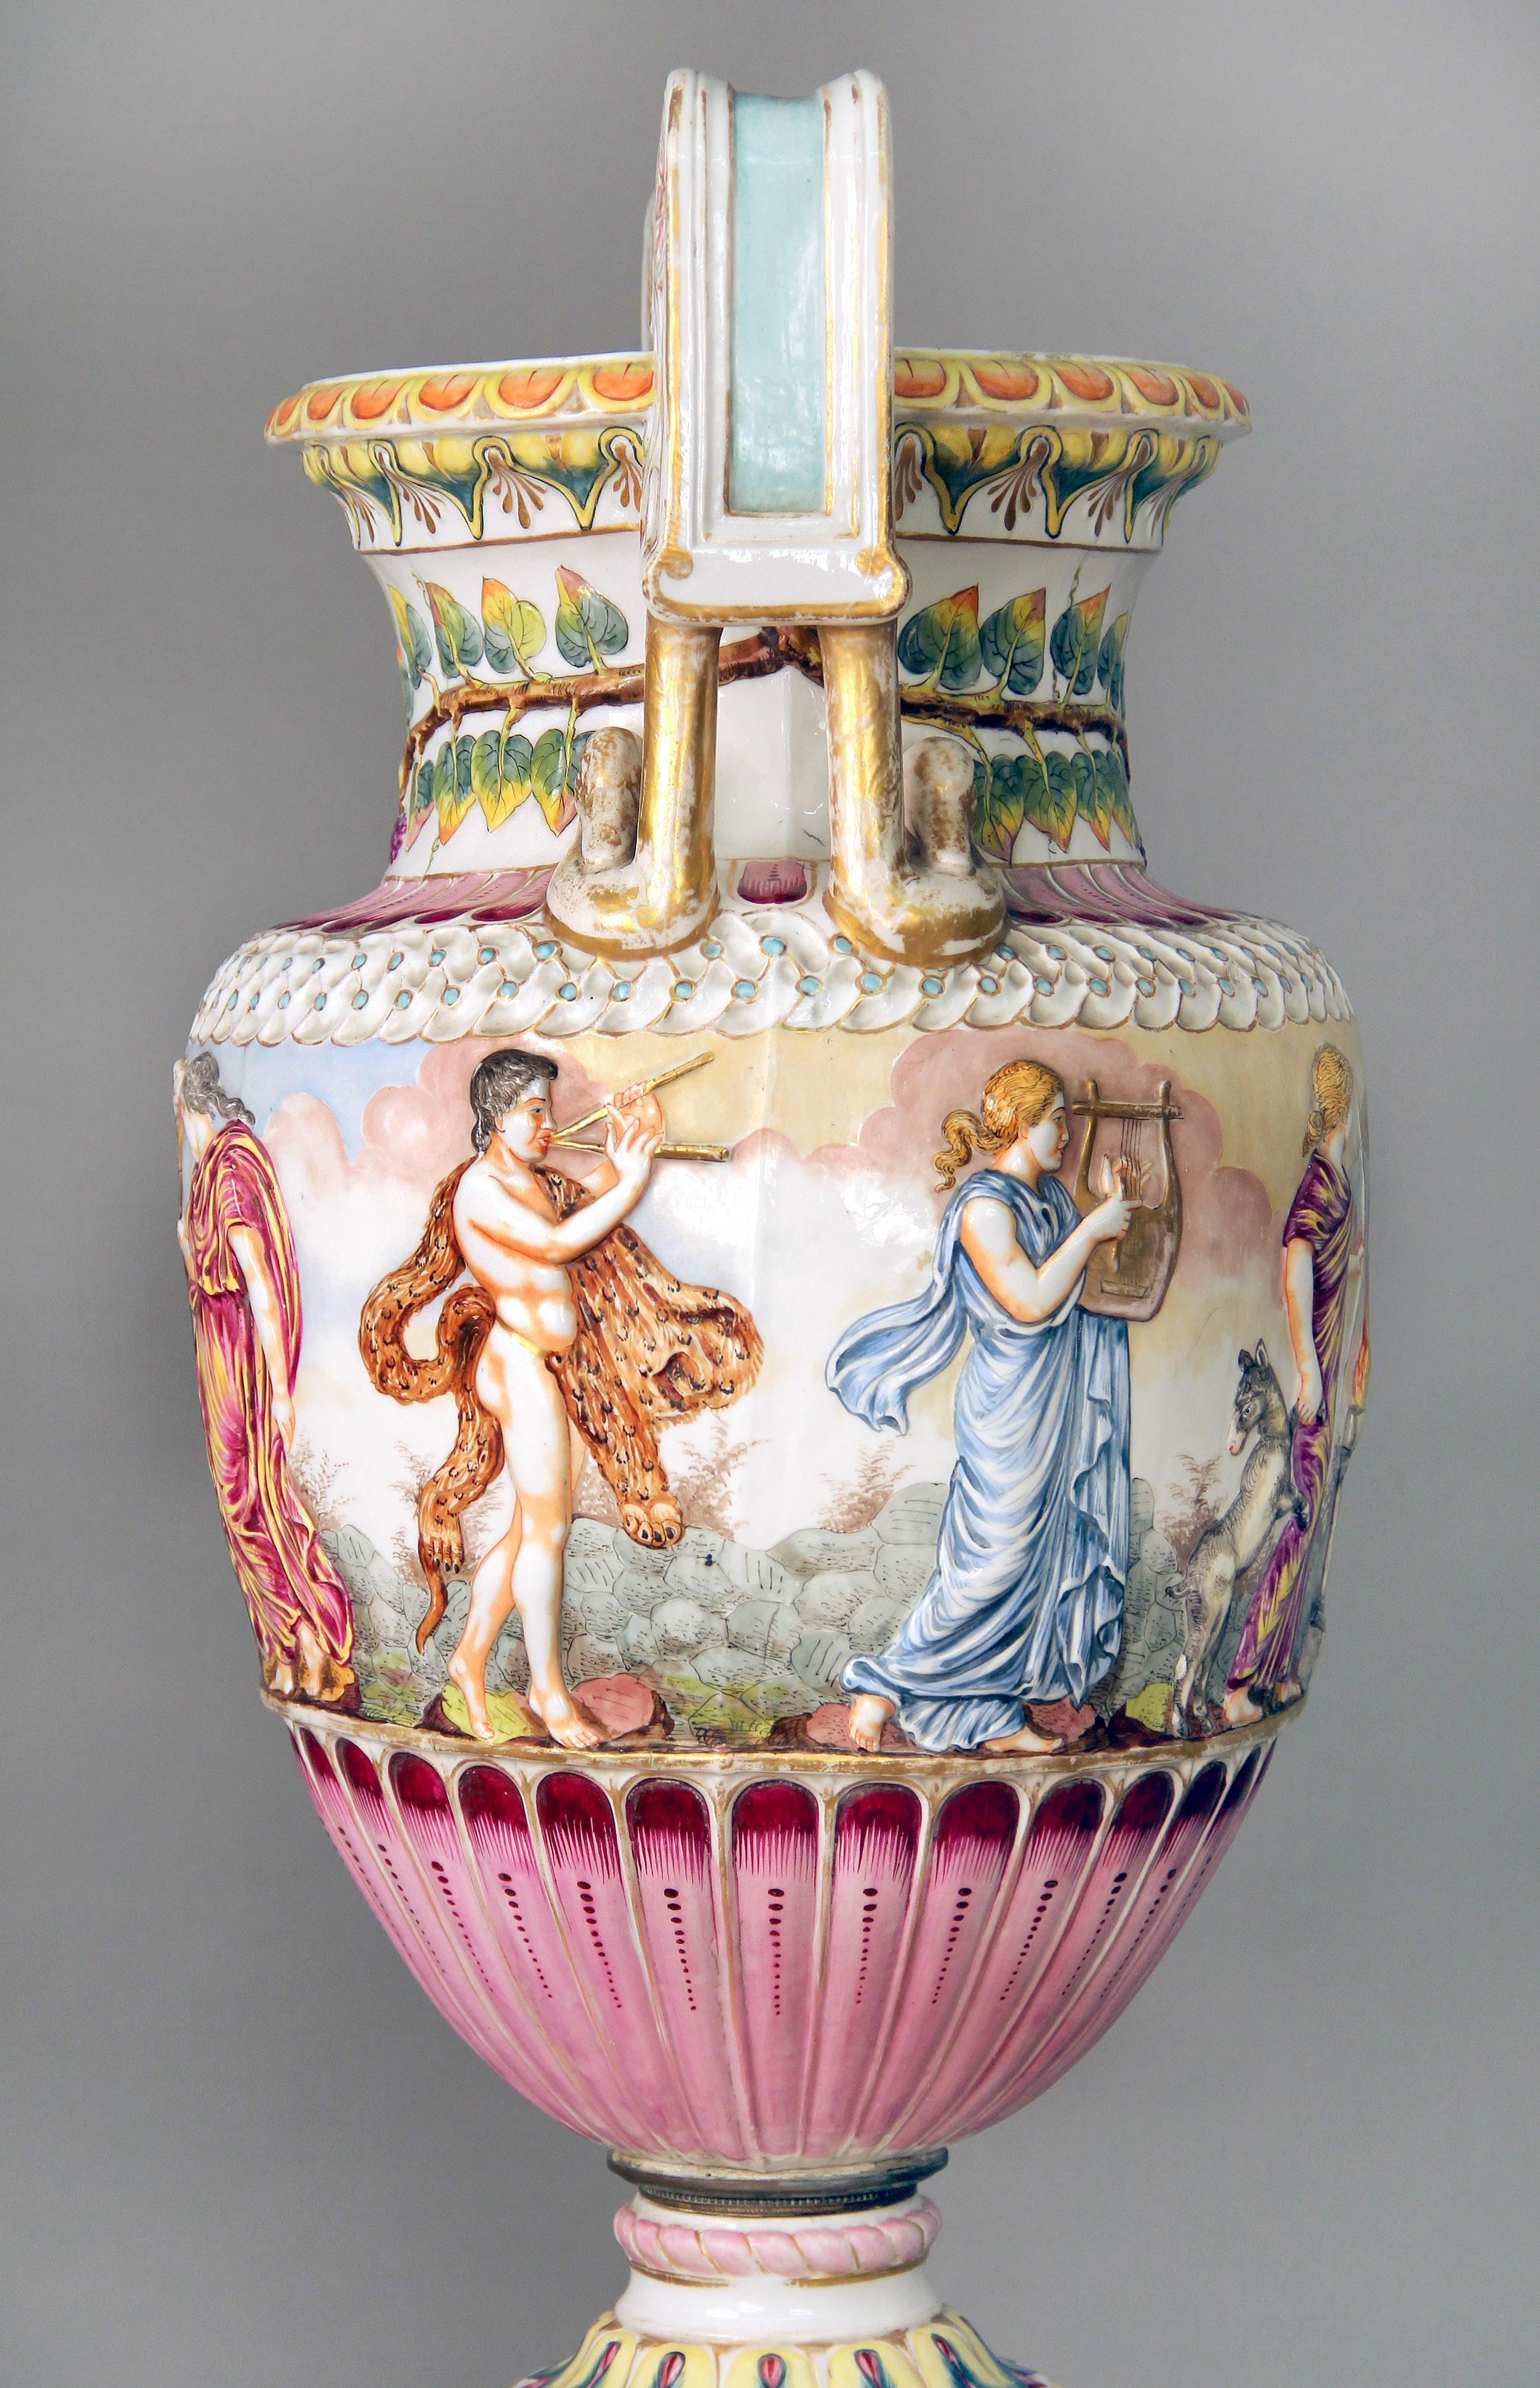 Vases A Chinese Porcelain Vase Circa Late 19th Century Factory Direct Selling Price Antiques